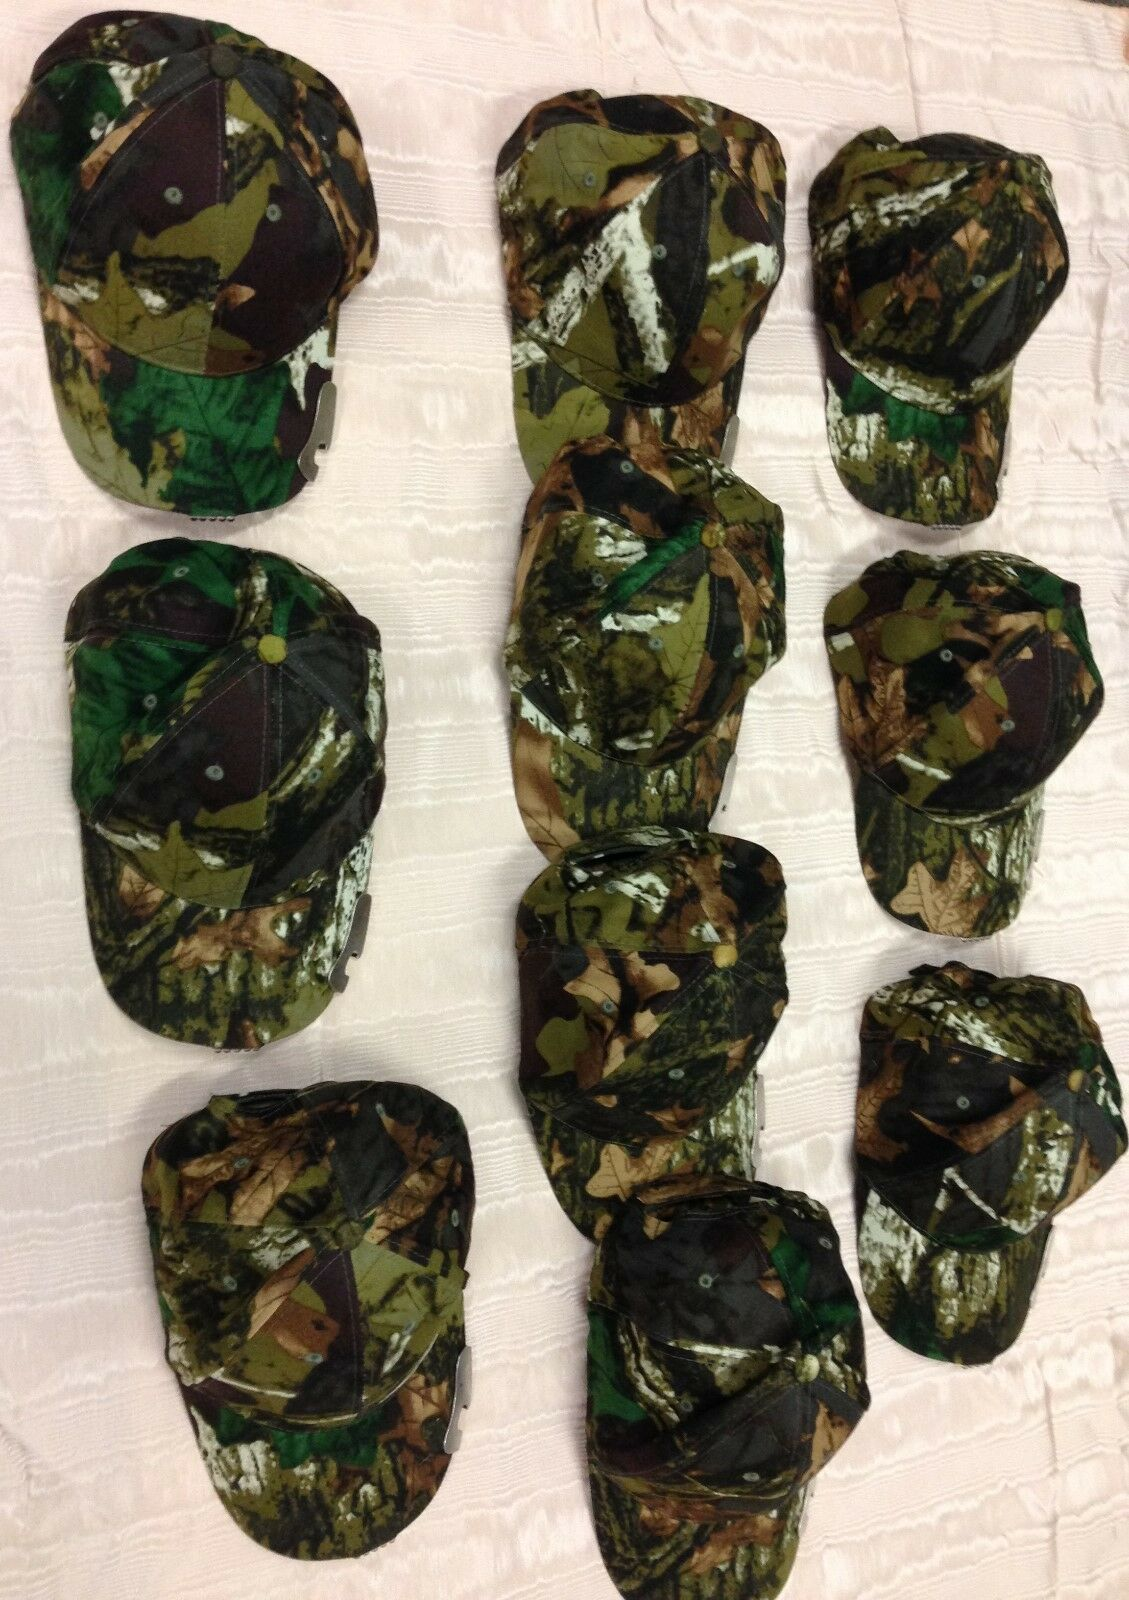 Lot of 10 Camouflage  Baseball  Cap with 5 LED Lights  and  Bottle Opener